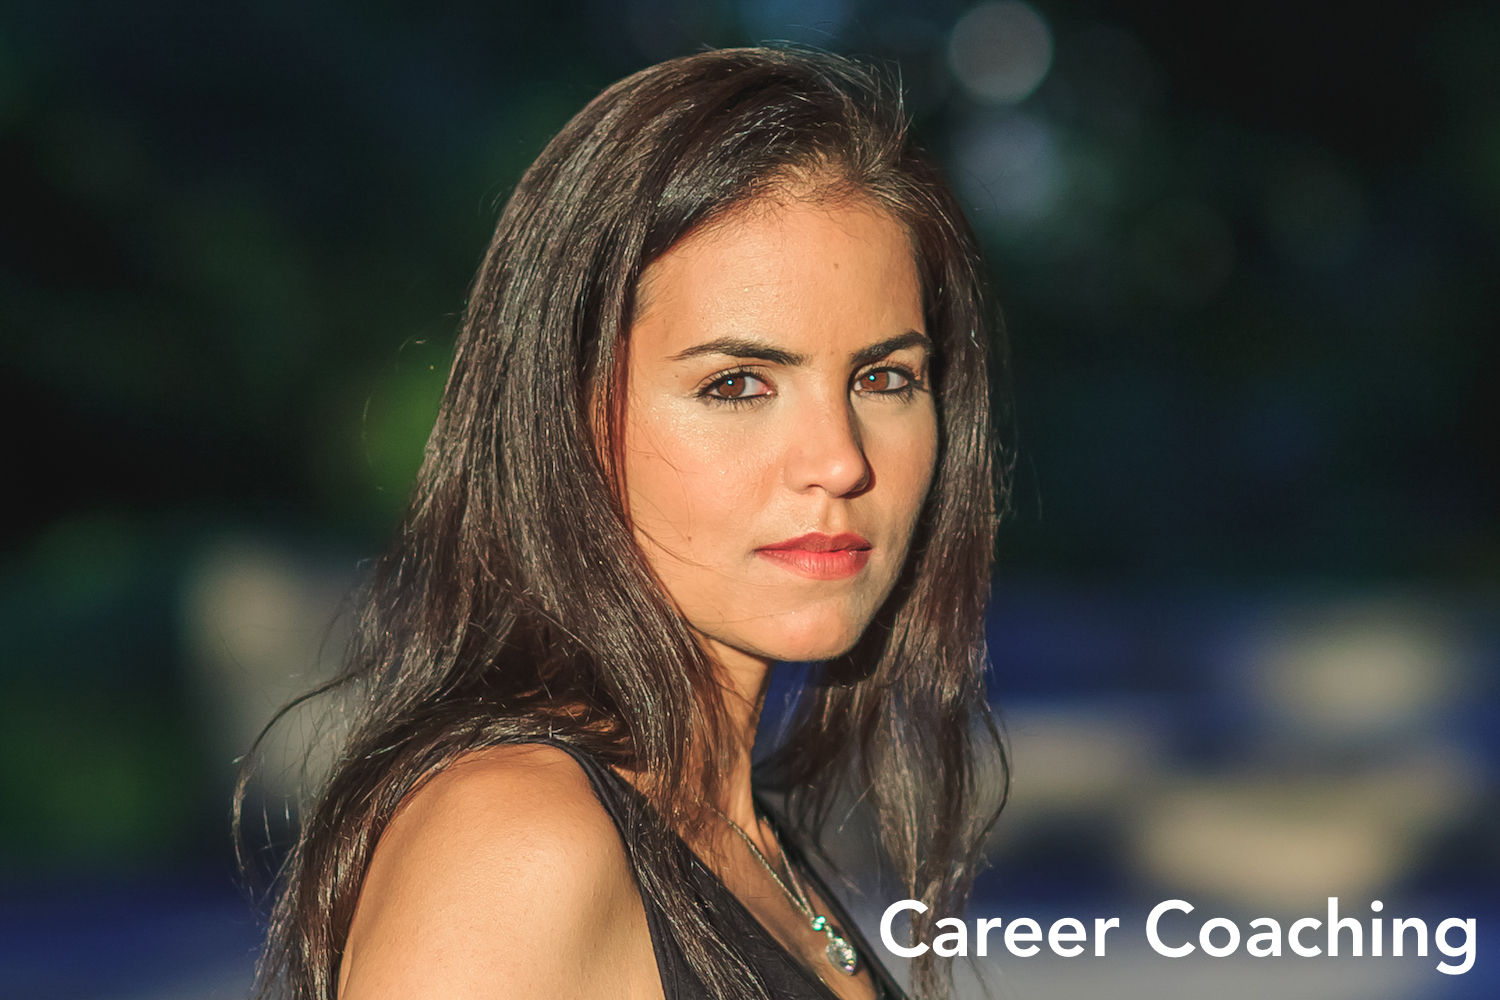 Career Coaching in South Windsor, CT, Hartford County, Connecticut (formerly in Kew Gardens, Queens, New York City, New York, NY), and on the phone or online anywhere. South Windsor, CT, Hartford County, Connecticut Life Coach and Queens, New York Life Coach Ninette. Contact to speak with a Life Coach, Relationship Coach, Career Coach and Spirituality Coach in South Windsor, CT, Hartford County, Connecticut, CT (formerly in Kew Gardens, Queens, New York, NY), who offers life coaching, relationship coaching, career coaching and spirituality coaching in South Windsor, CT, Hartford County, Connecticut, CT and over the phone or online anywhere. Coaching in English And Hebrew. Seeking a life coach, relationship coach, career coach, or spirituality coach in South Windsor, CT, Hartford County, Connecticut, CT (formerly in Kew Gardens, Queens, New York, NY)? Contact South Windsor, CT, Hartford County, Connecticut Life Coach, Relationship Coach, Career Coach, and Spirituality Coach and Kew Gardens, Queens, New York Life Coach, Relationship Coach, Career Coach and Spirituality Coach Ninette for life coaching, relationship coaching, career coaching, and spirituality coaching in South Windsor, CT, Hartford County, Connecticut, CT (formerly in Kew Gardens, Queens, New York City, New York, NY) or over the phone or online anywhere. Life Coach, Relationship Coach, Career Coach and Spirituality Coach in South Windsor, CT, Hartford County, Connecticut, formerly in Kew Gardens, Queens, New York City, New York, NY, providing life coaching, relationship coaching, career coaching and spirituality coaching in South Windsor, CT, Hartford County, Connecticut, Kew Gardens, Queens, New York City, New York, NY, and over the phone or online anywhere. If you're seeking life coaching, relationship coaching, career coaching, or spirituality coaching in South Windsor, CT, Hartford County, Connecticut or Kew Gardens, Queens, New York City, New York, NY, contact South Windsor, CT, Hartford County, Connecticut Life Coach, Relationship Coach, Career Coach, and Spirituality Coach and Kew Gardens, Queens, New York Life Coach, Relationship Coach, Career Coach and Spirituality Coach Ninette for life coaching, relationship coaching, career coaching, and spirituality coaching in South Windsor, CT, Hartford County, Connecticut, CT, or Kew Gardens, Queens, New York City, New York, NY or over the phone or online anywhere. South Windsor, CT, Hartford County, Connecticut Life Coach, Relationship Coach, Career Coach and Spirituality Coach and Queens, New York Life Coach, Life Coach, Relationship Coach, Career Coach and Spirituality Coach in South Windsor, CT, Hartford County, Connecticut (formerly in Kew Gardens, Queens, New York City, New York, NY), providing life coaching, relationship coaching, career coaching and spirituality coaching in South Windsor, CT, Hartford County, Connecticut, CT (formerly in Kew Gardens, Queens, New York City, New York, NY) and over the phone or online anywhere, for powerful, empowering life coaching. Get ready for amazing coaching and guidance! Contact Life Coach Ninette to speak with a life coach, relationship coach, career coach and spirituality coach in South Windsor, CT, Hartford County, Connecticut, CT (formerly in Kew Gardens, Queens, New York City, New York, NY) for life coaching, relationship coaching, career coaching and spirituality coaching in South Windsor, CT, Hartford County, Connecticut, CT (formerly in Kew Gardens, Queens, New York City, New York, NY). South Windsor, CT, Hartford County, Connecticut Life Coach, Relationship Coach, Career Coach, and Spirituality Coach and Queens, New York Life Coach, Relationship Coach, Career Coach, and Spirituality Coach Ninette provides life coaching, relationship coaching, career coaching and spirituality coaching in South Windsor, CT, Hartford County, Connecticut, CT (formerly in Kew Gardens, Queens, New York City, New York, NY) and over the phone or online anywhere!